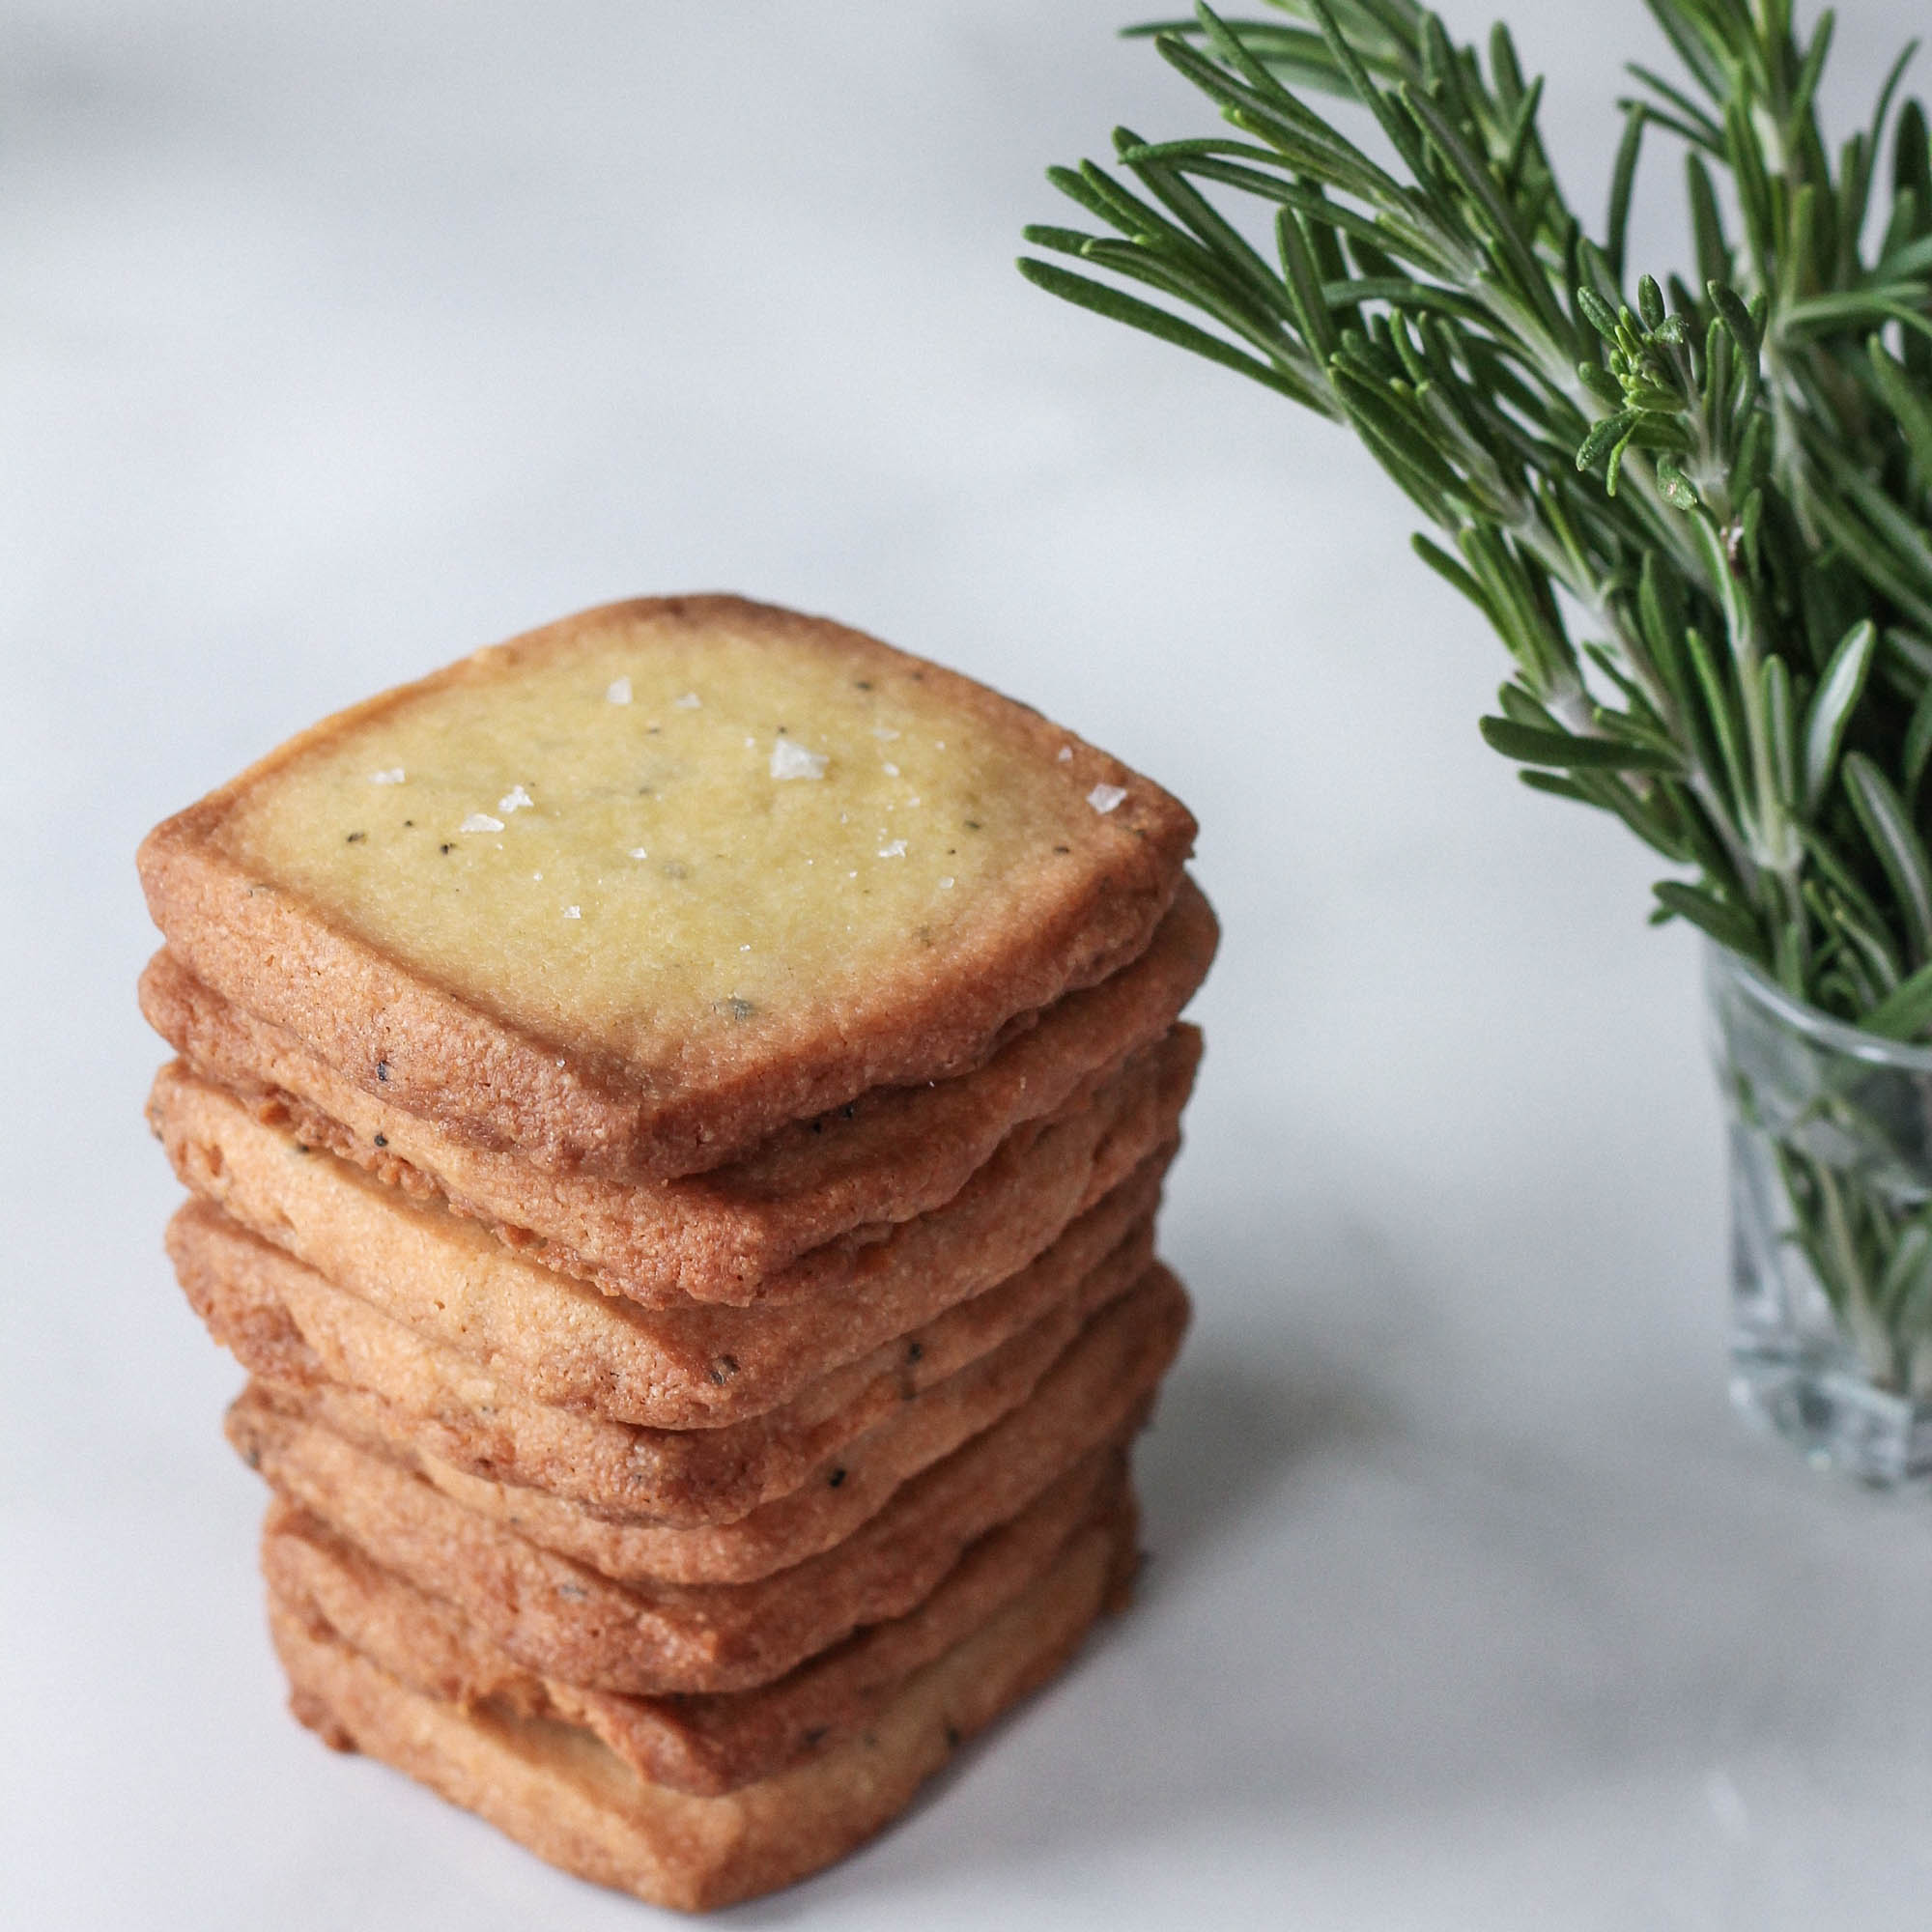 ROSEMARY OLIVE OIL SHORTBREAD COOKIES